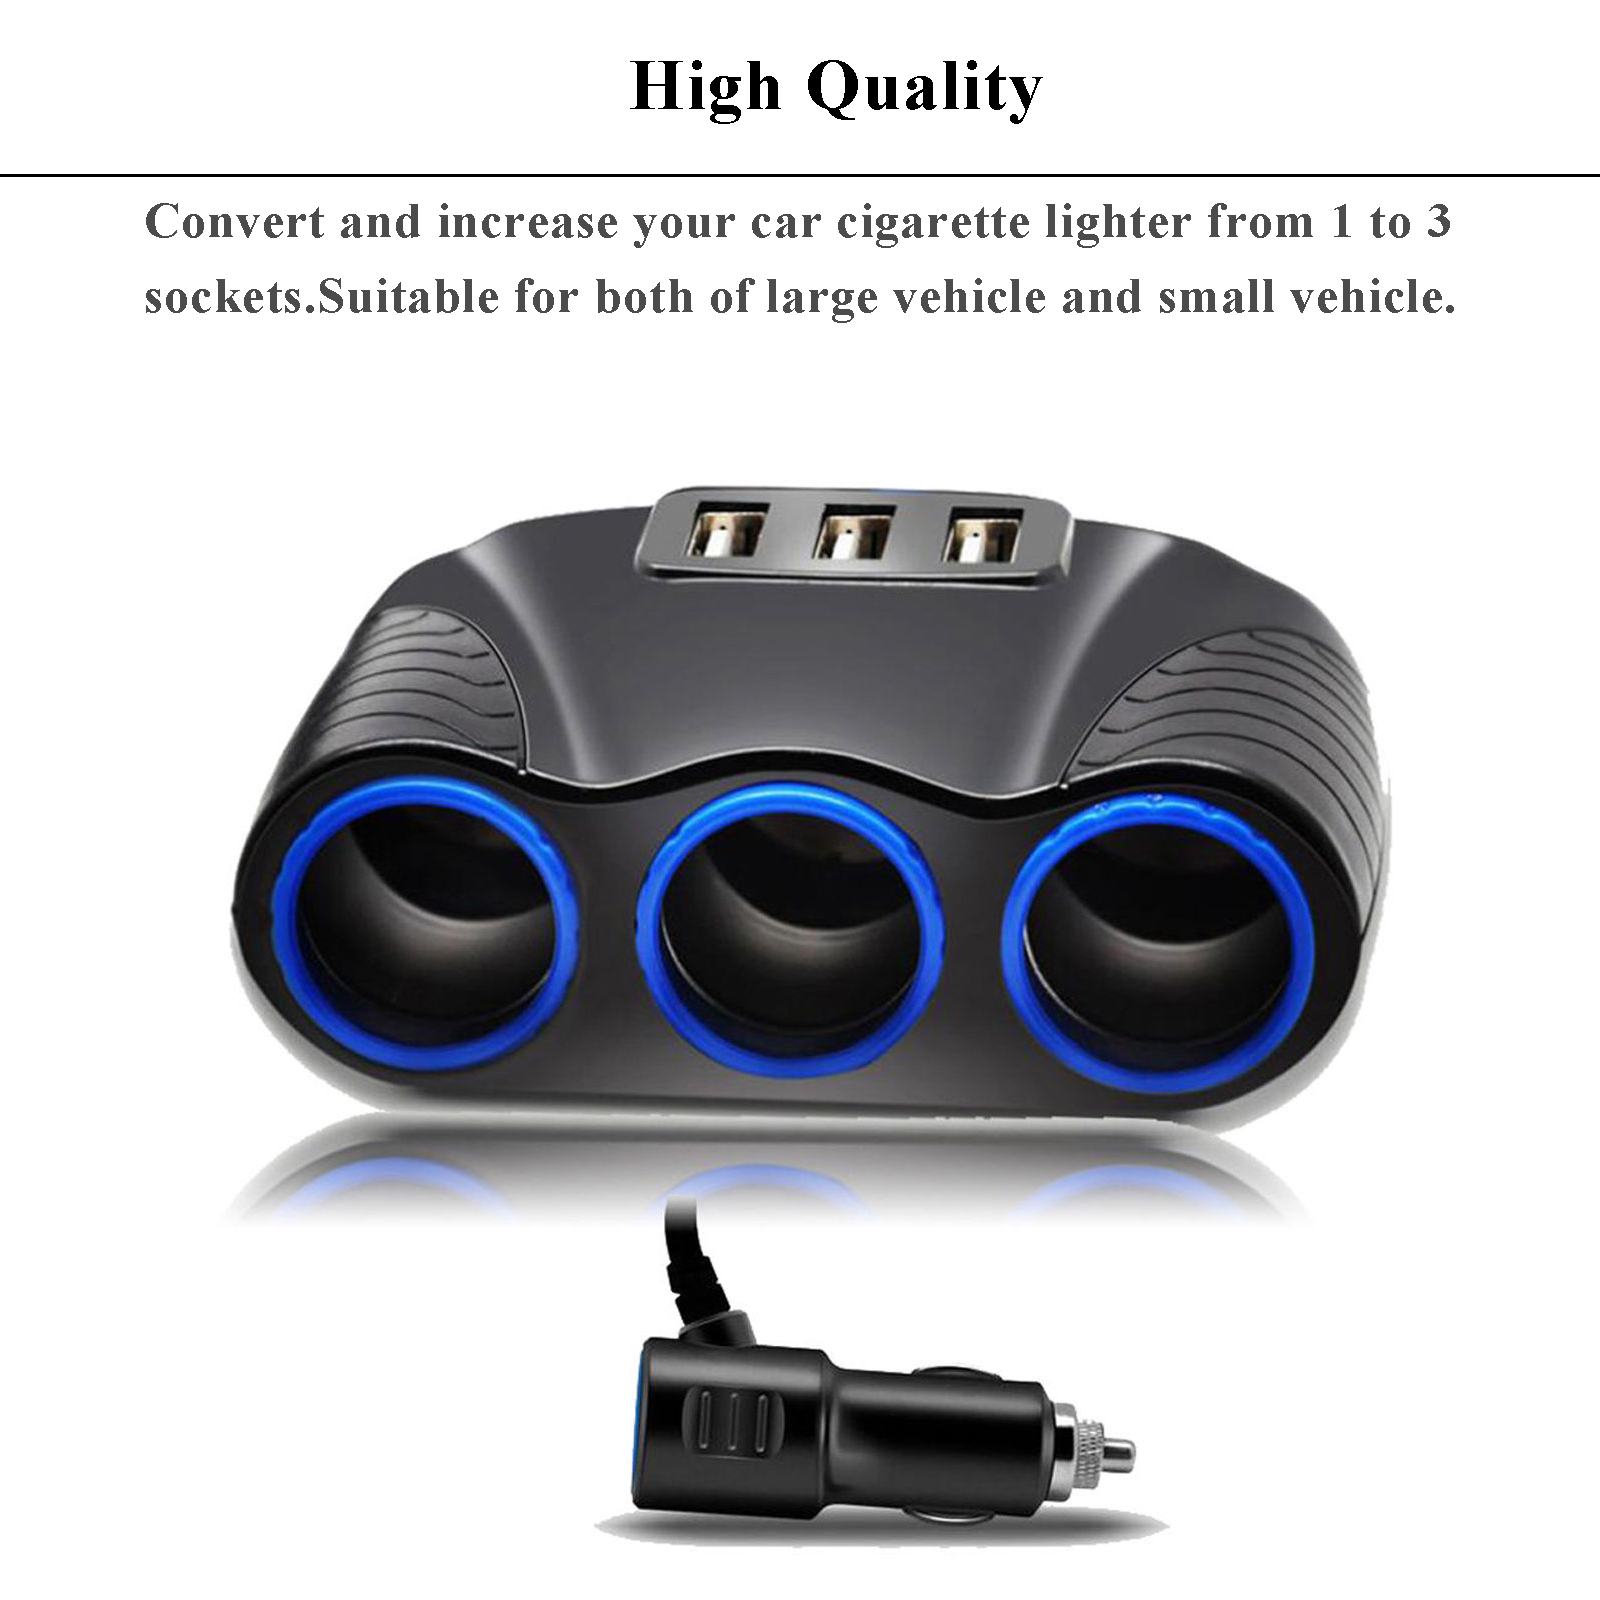 Eekit Automotive 3 Socket Car Cigarette Lighter Splitter With 2 Port Best New 12v 120w Power Outlet Plug Under 6 Usb Charger Adapter Dc For Iphon